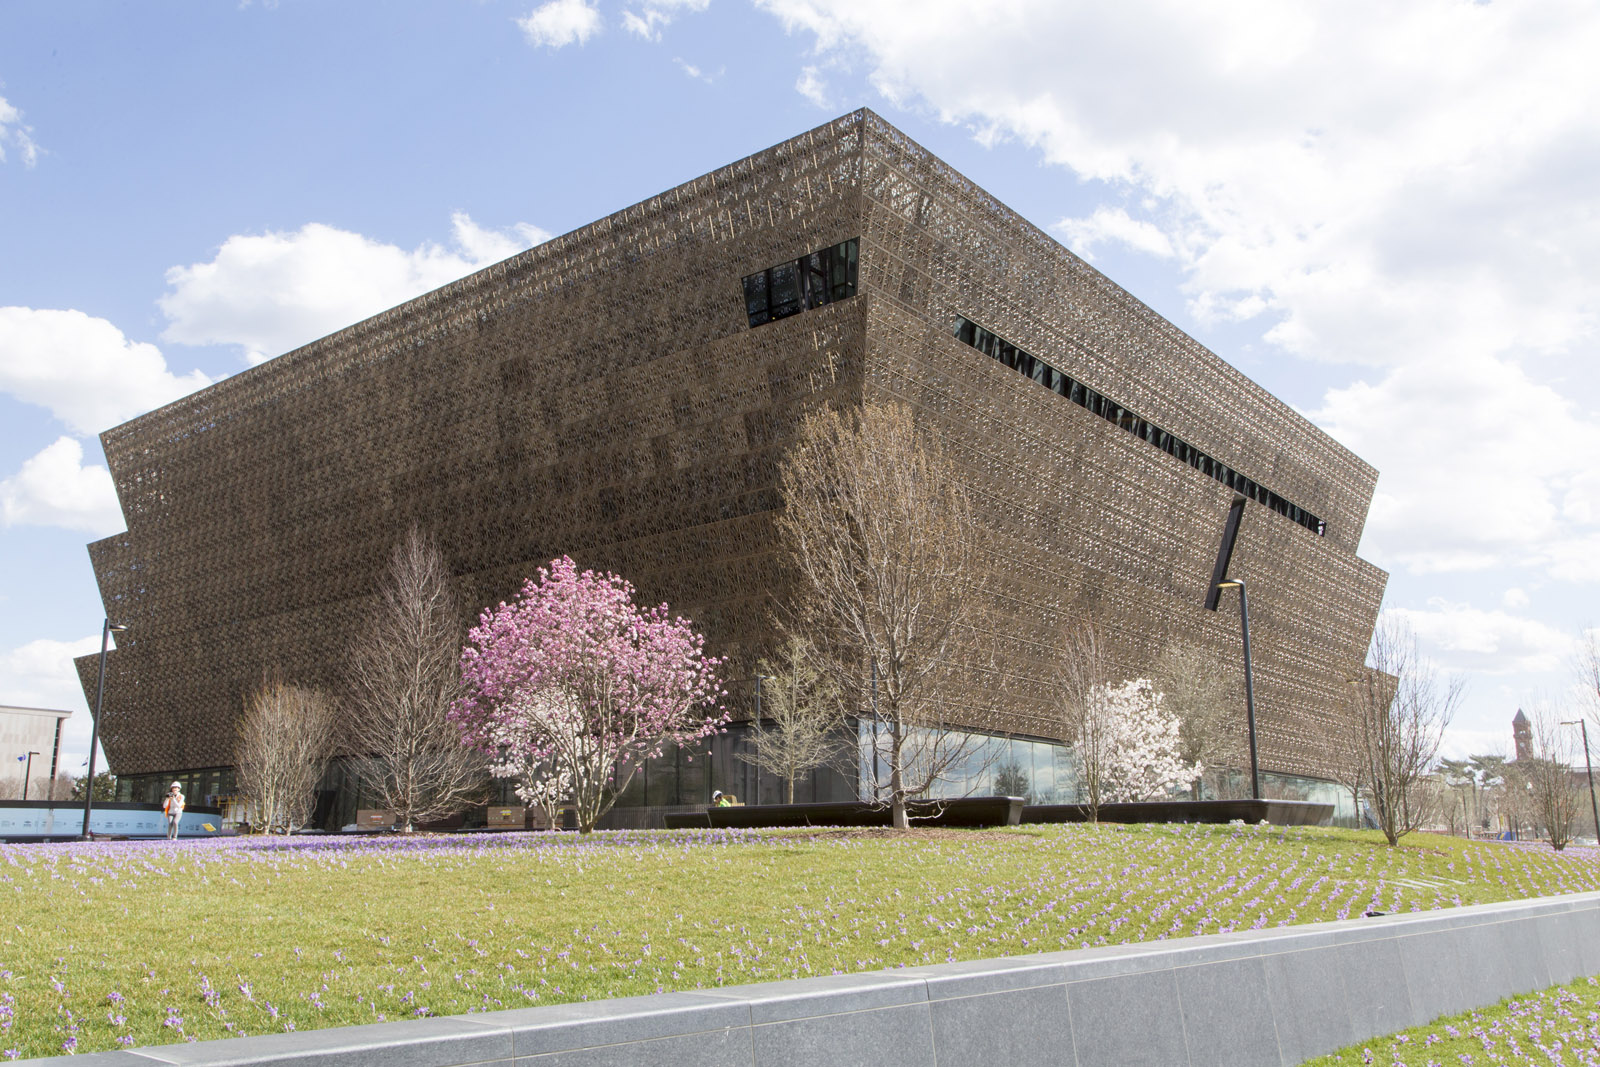 The National Museum of African American History & Culture was completed at a cost of over $500 million.